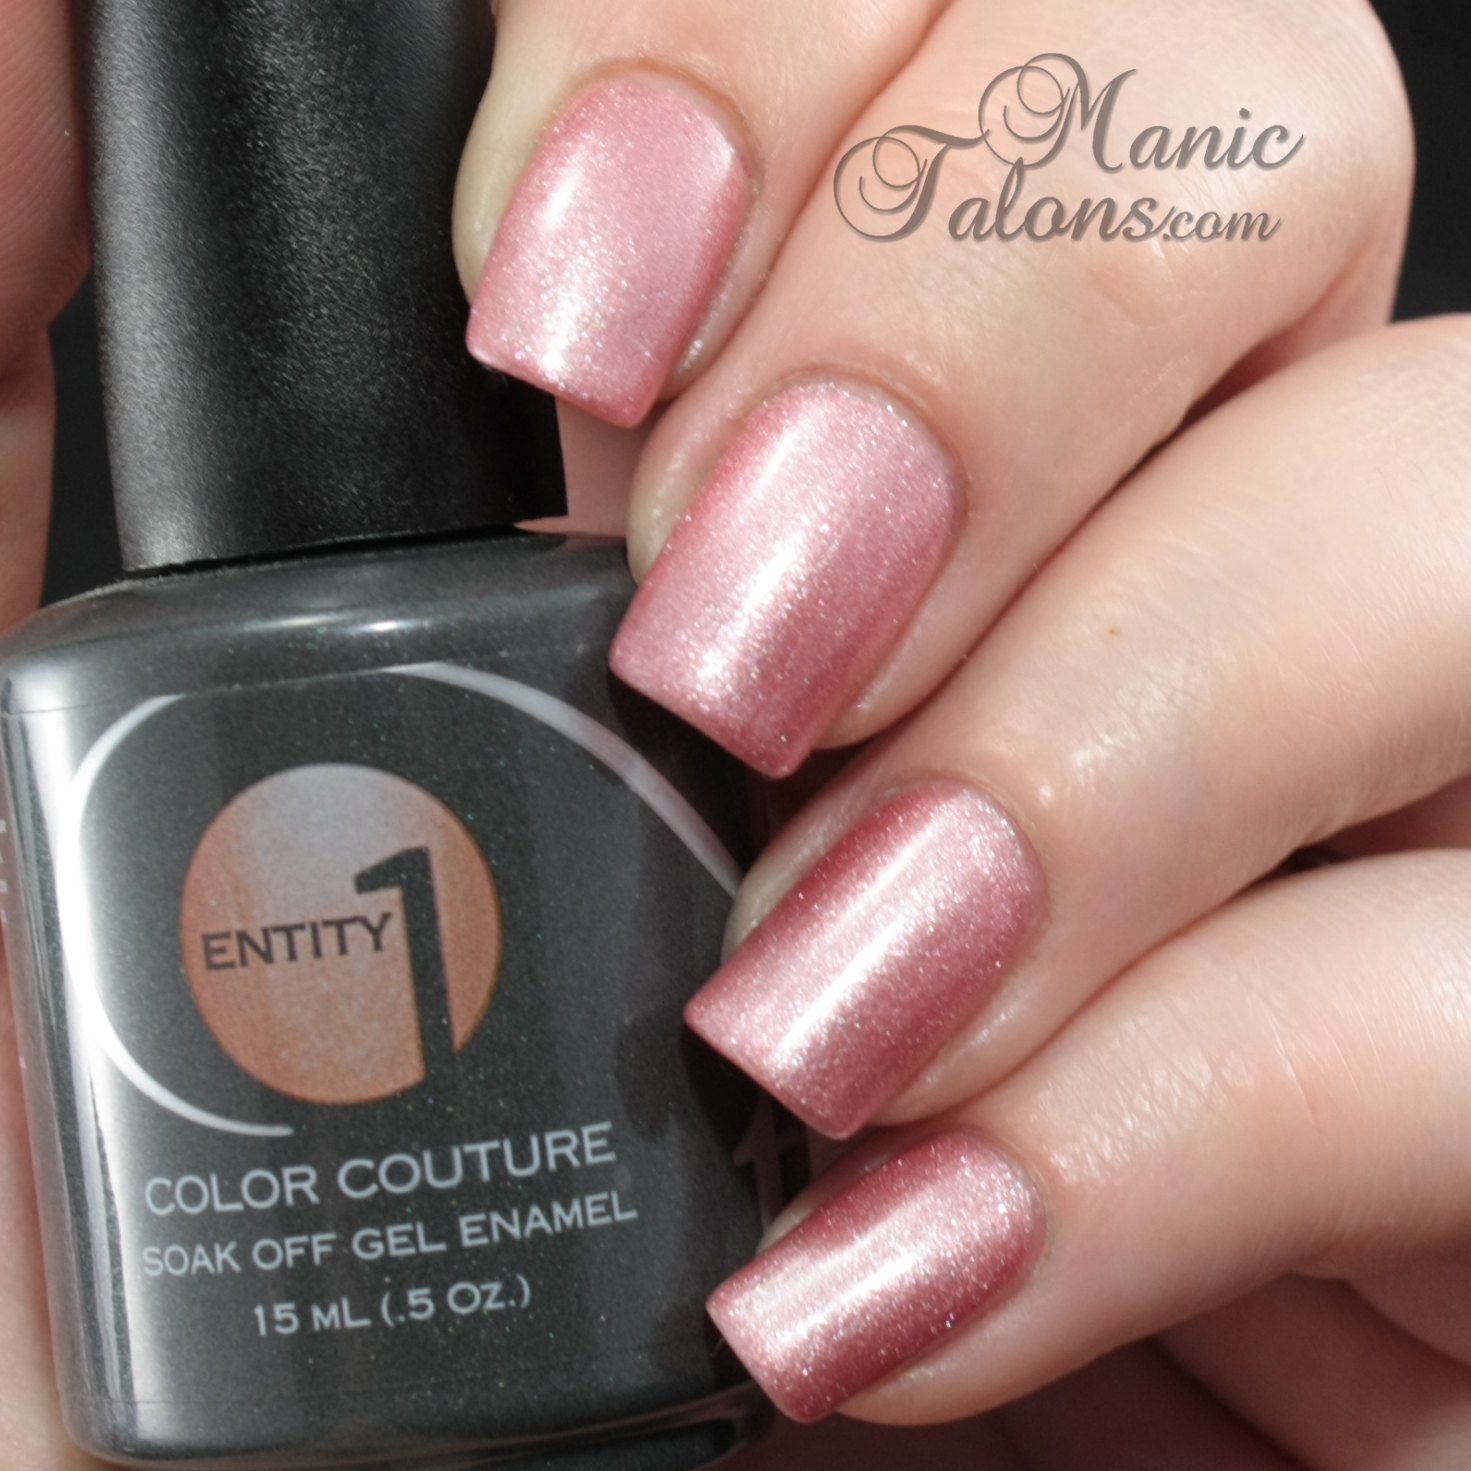 Entity1 Color Couture Soak Off Gel Polish Slip Into Something Comfortable Swatch